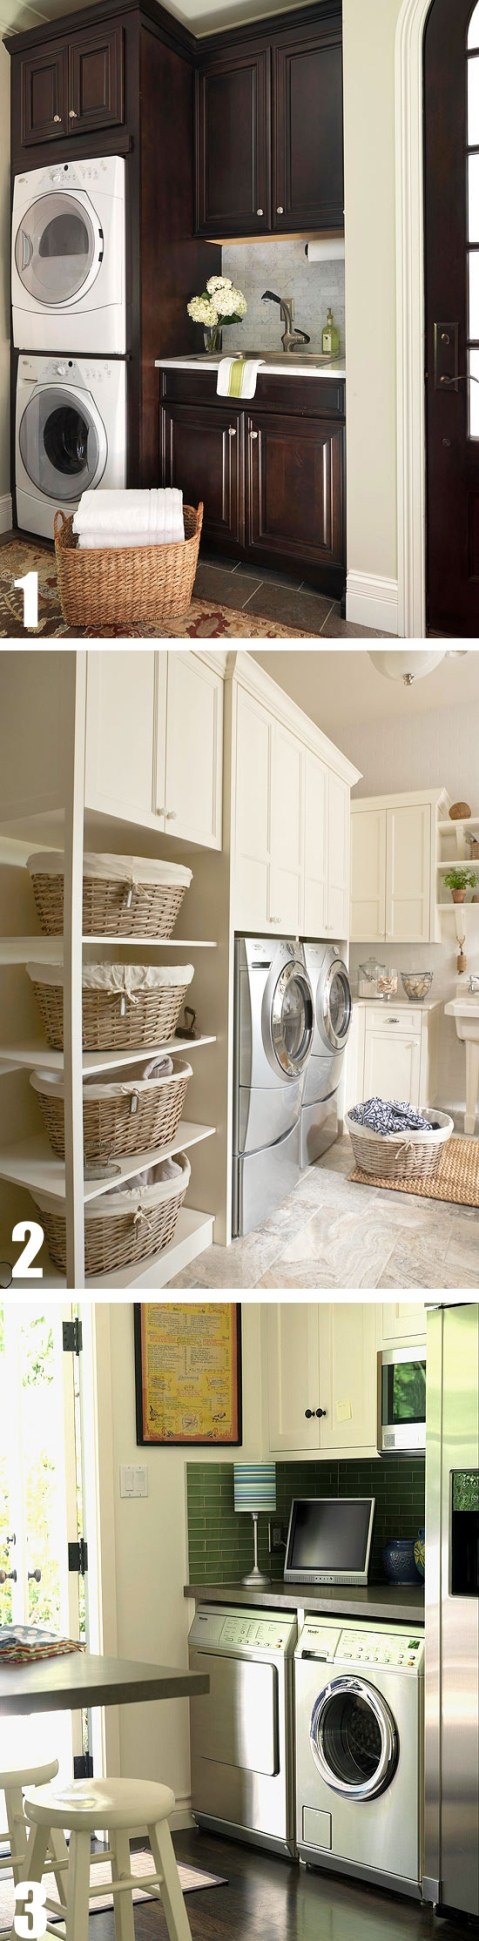 3 laundry rooms